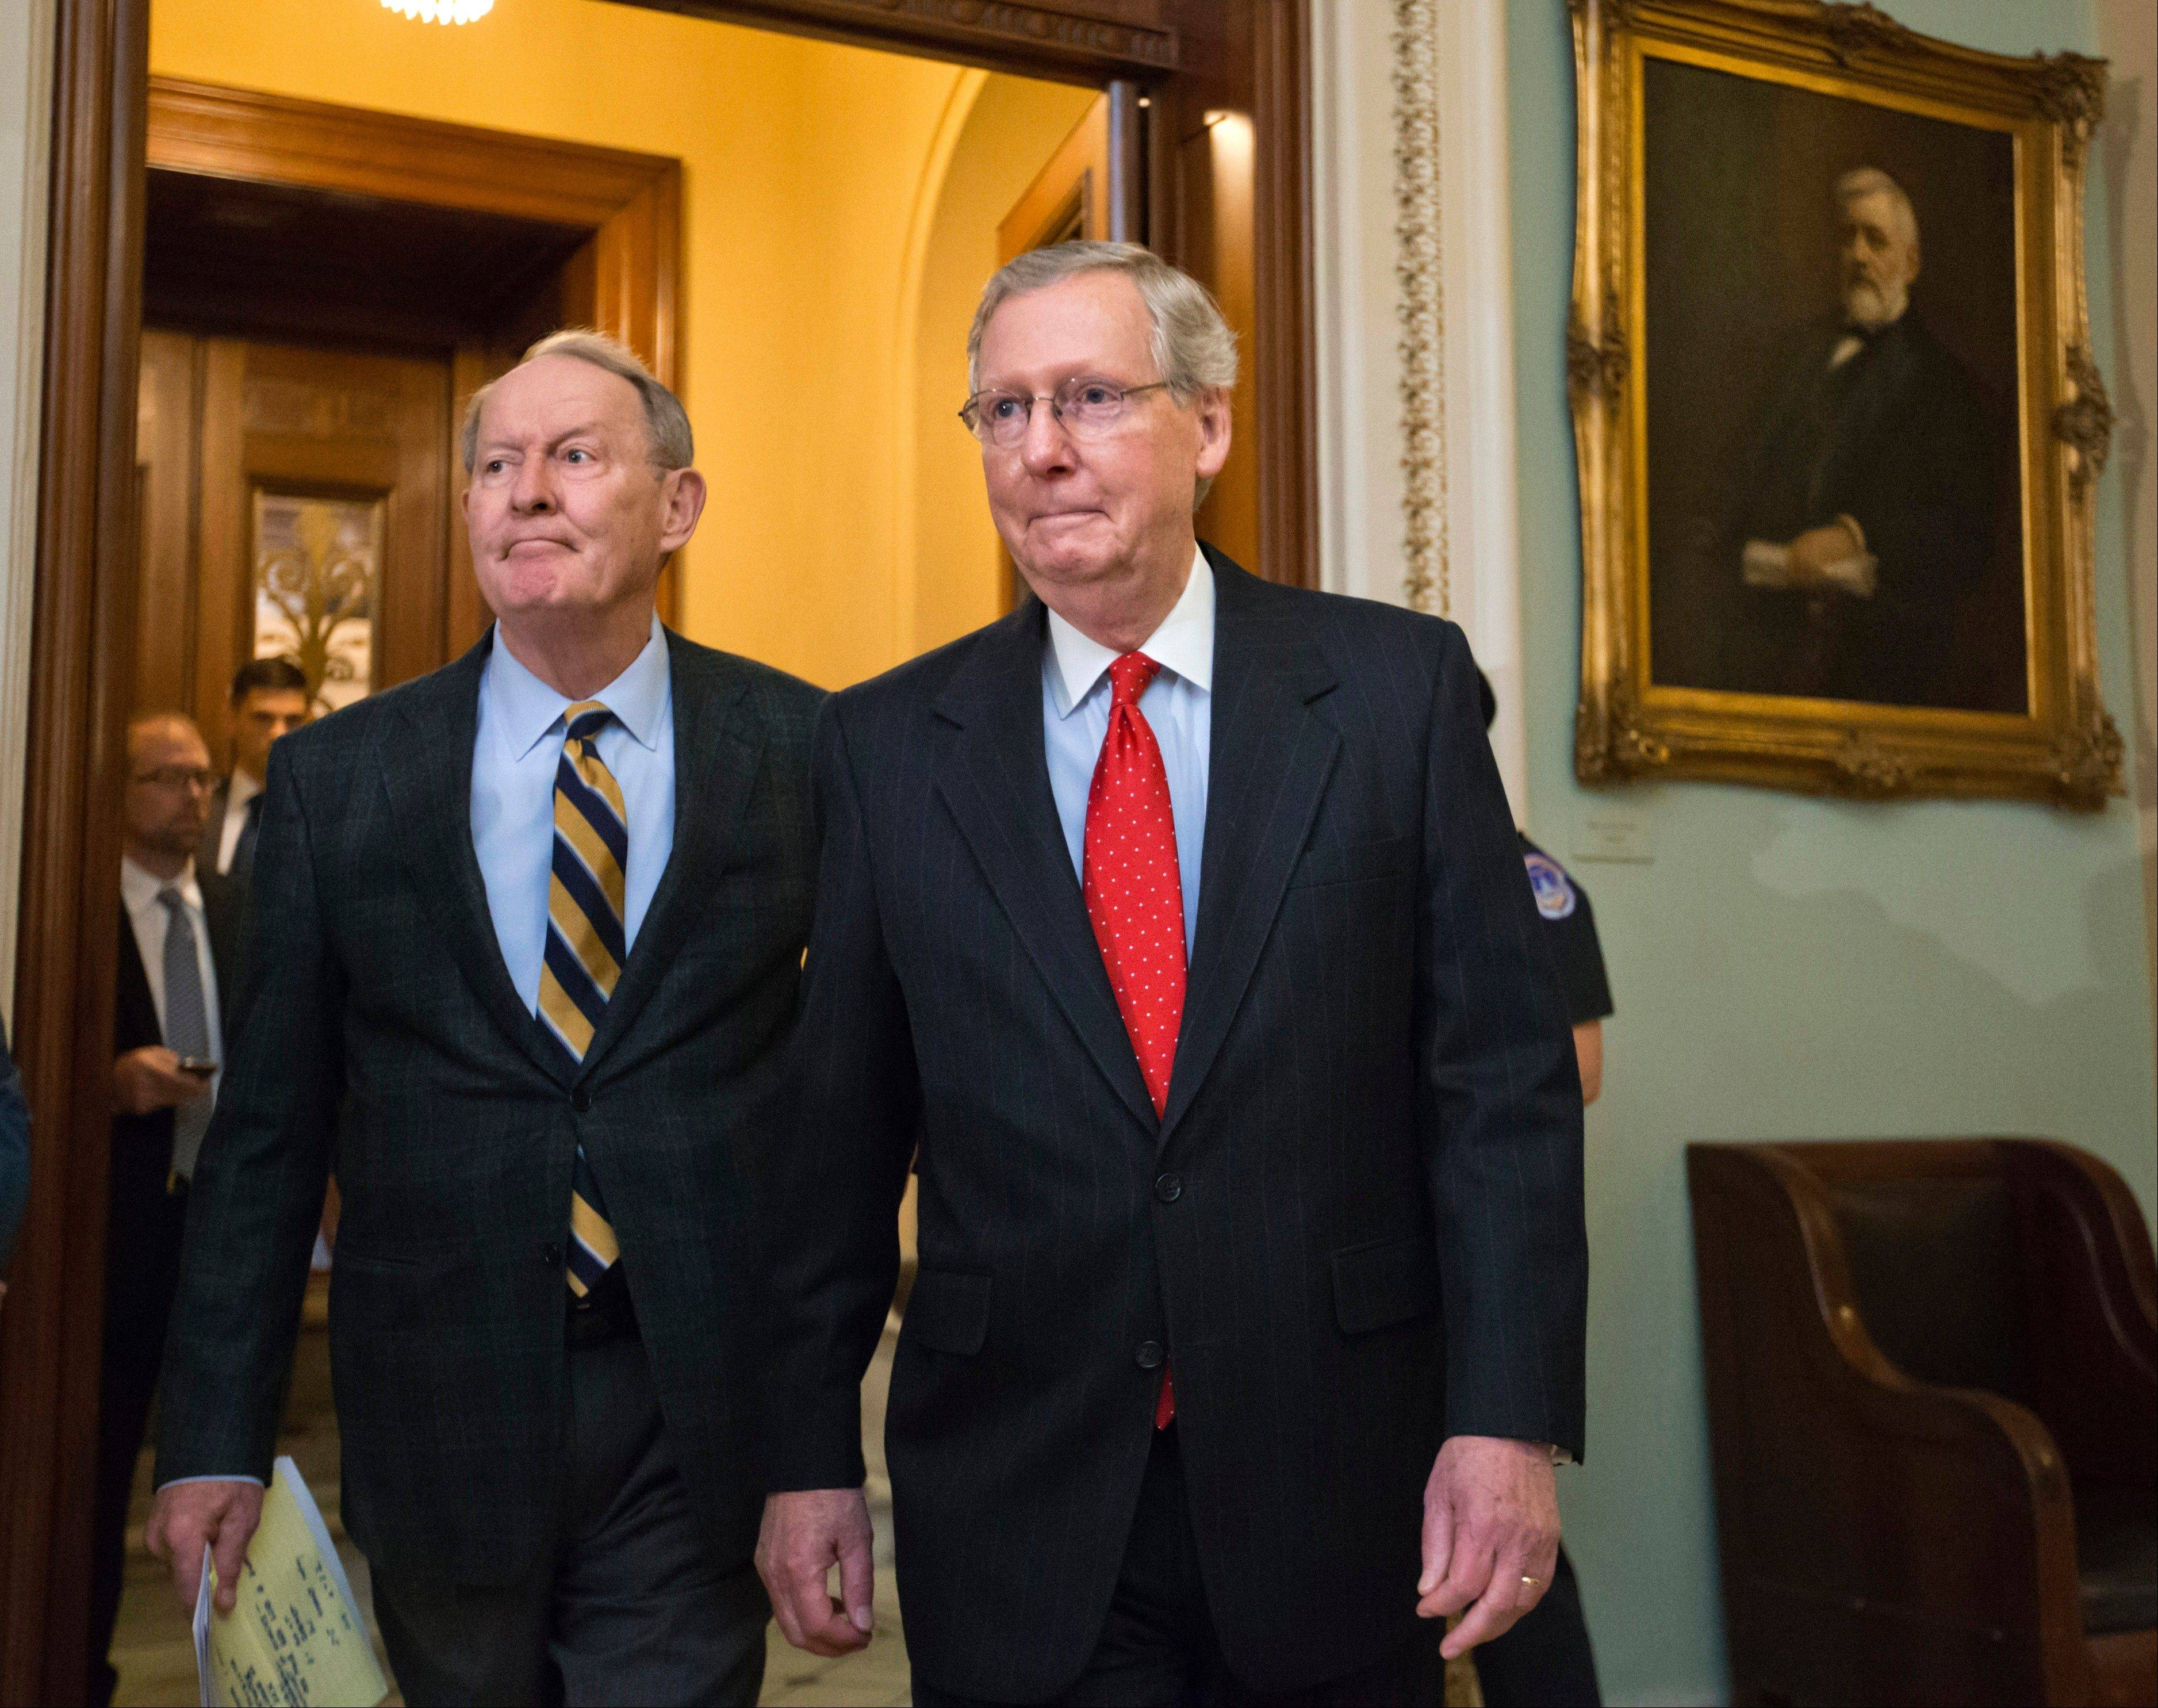 Senate Minority Leader Mitch McConnell, joined by fellow Republican Sen. Lamar Alexander of Tennessee, left, leaves the chamber to speak to reporters after the Democratic majority voted to weaken filibusters in Novemeber.